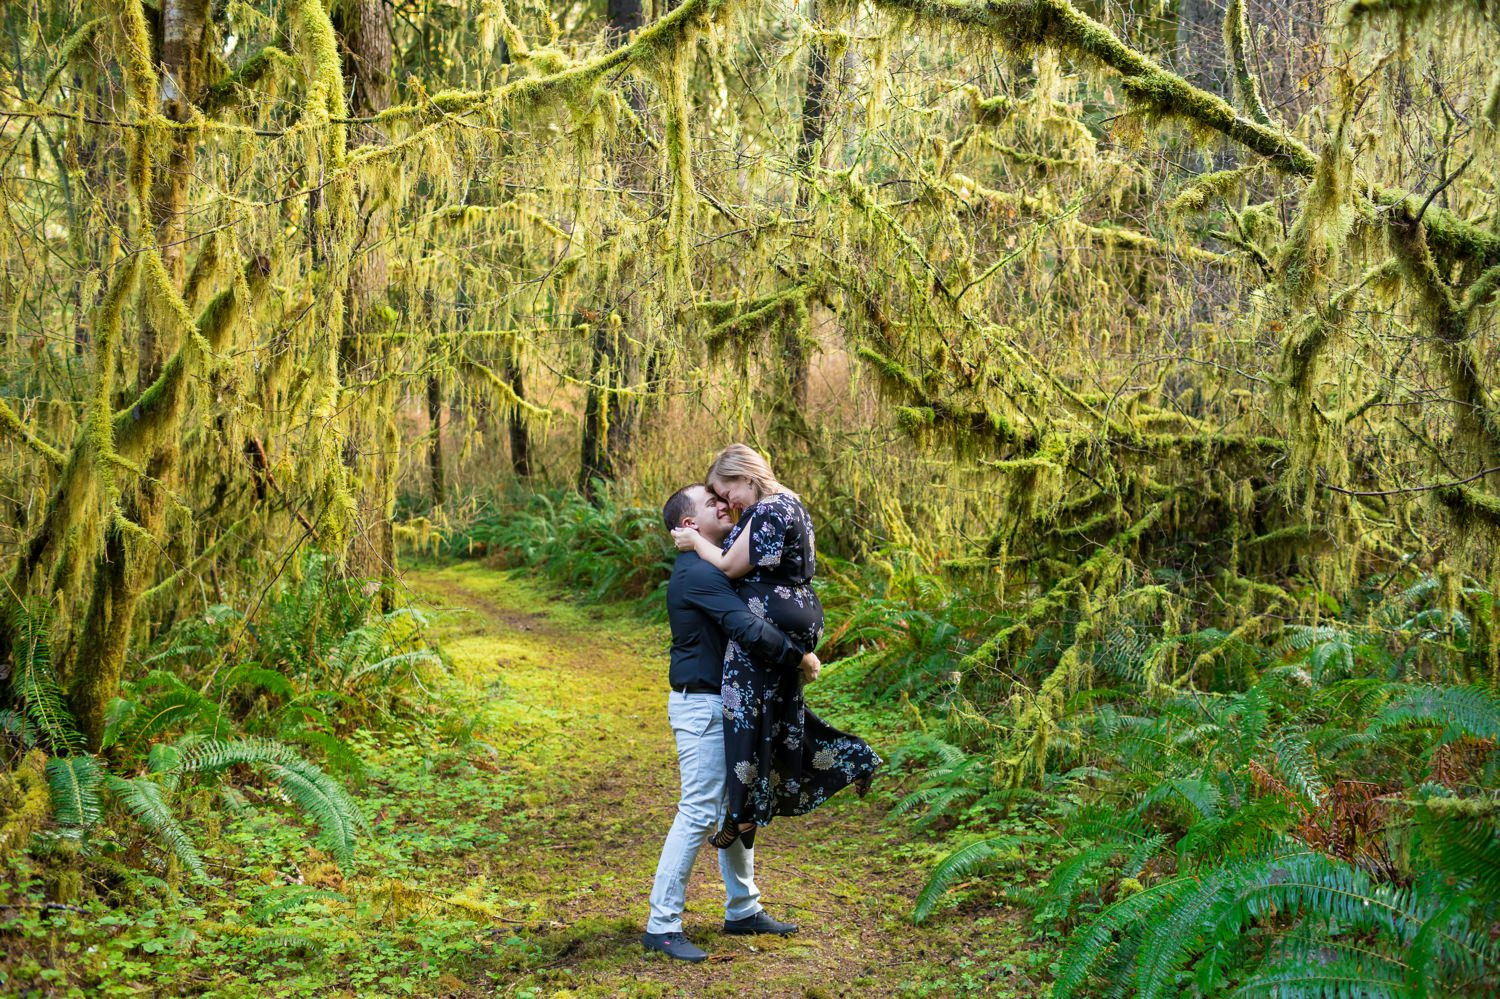 oregon-coast-engagement-pictures-007 Oregon Coast Engagement Pictures | North Fork Smith River Adventure Engagement | Sweet Creek Falls | Kaylee & Wyatt